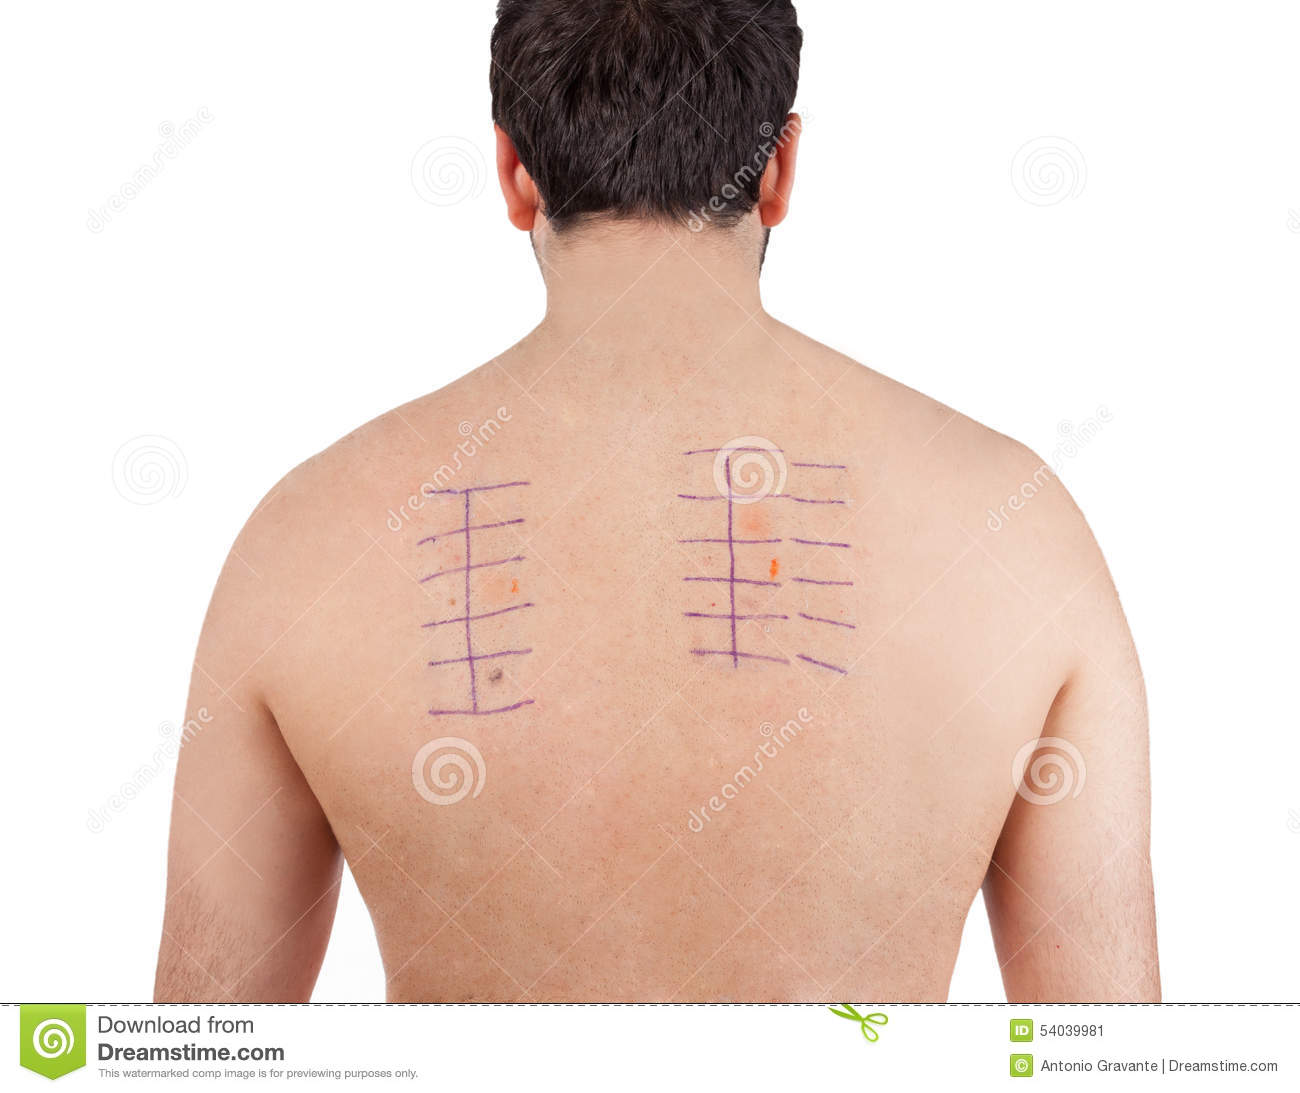 skin allergy patch test on back of male patient on white background